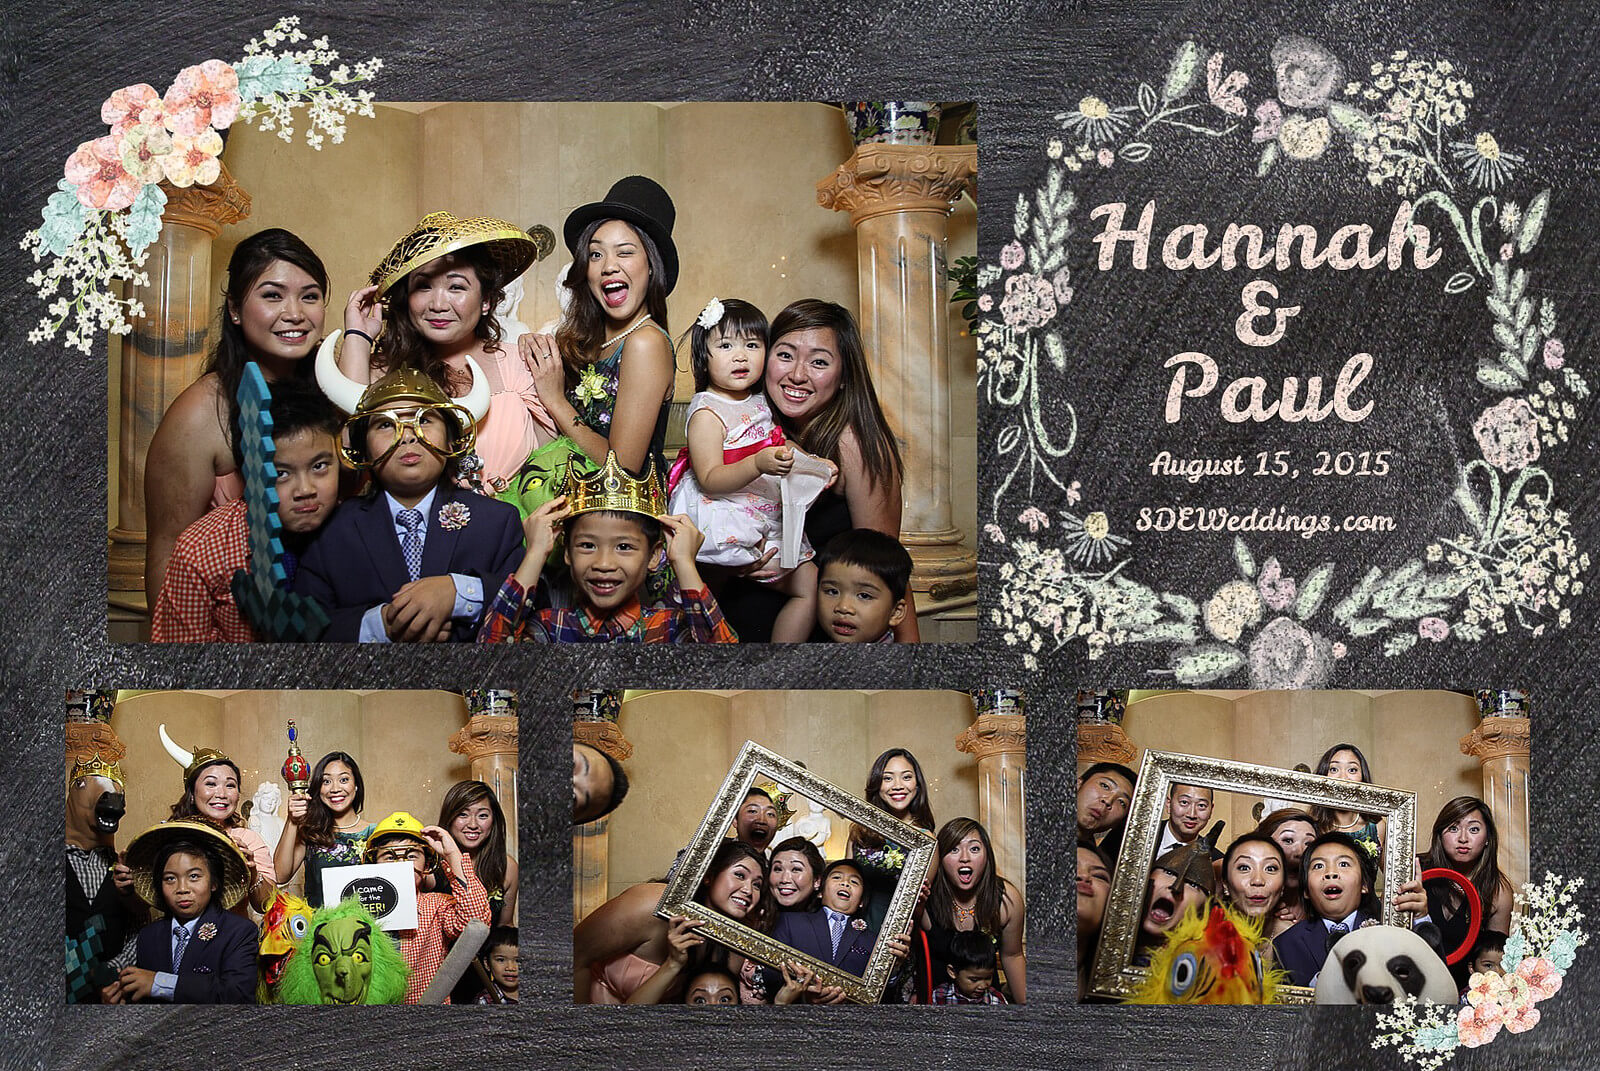 Markham Premiere Banquet Wedding Photobooth Rental 11